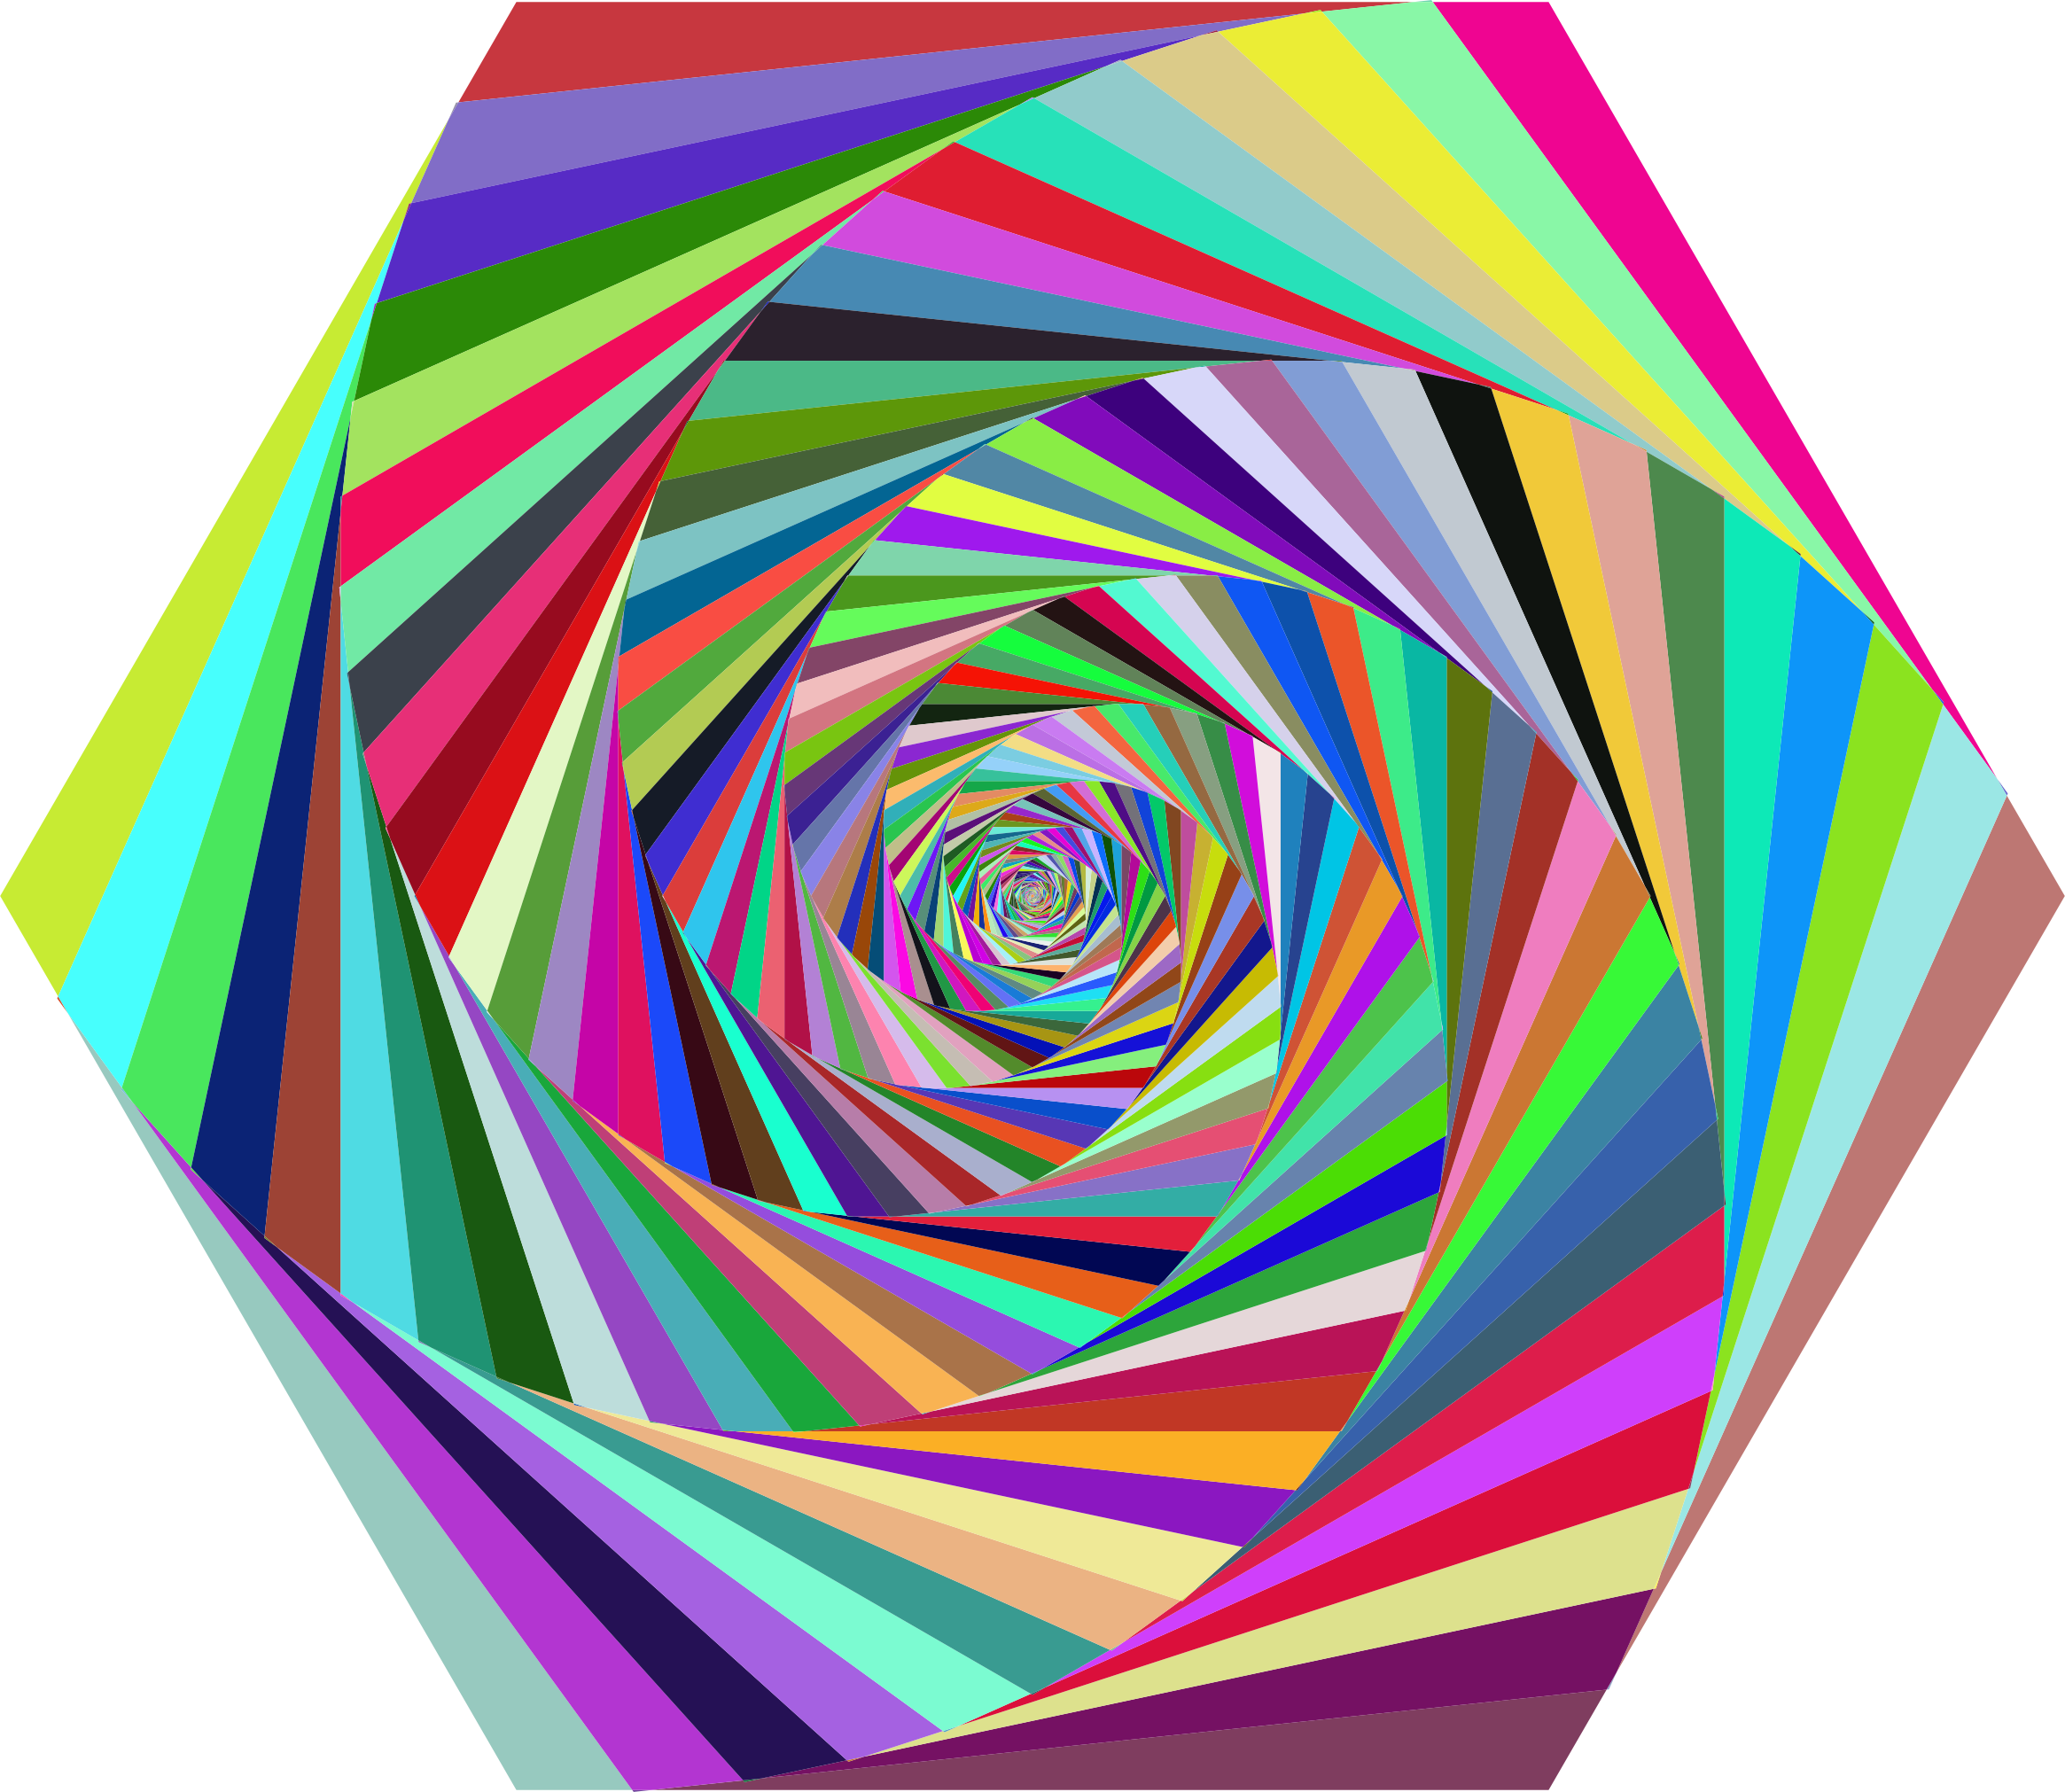 Prismatic Hexagonal Art by GDJ